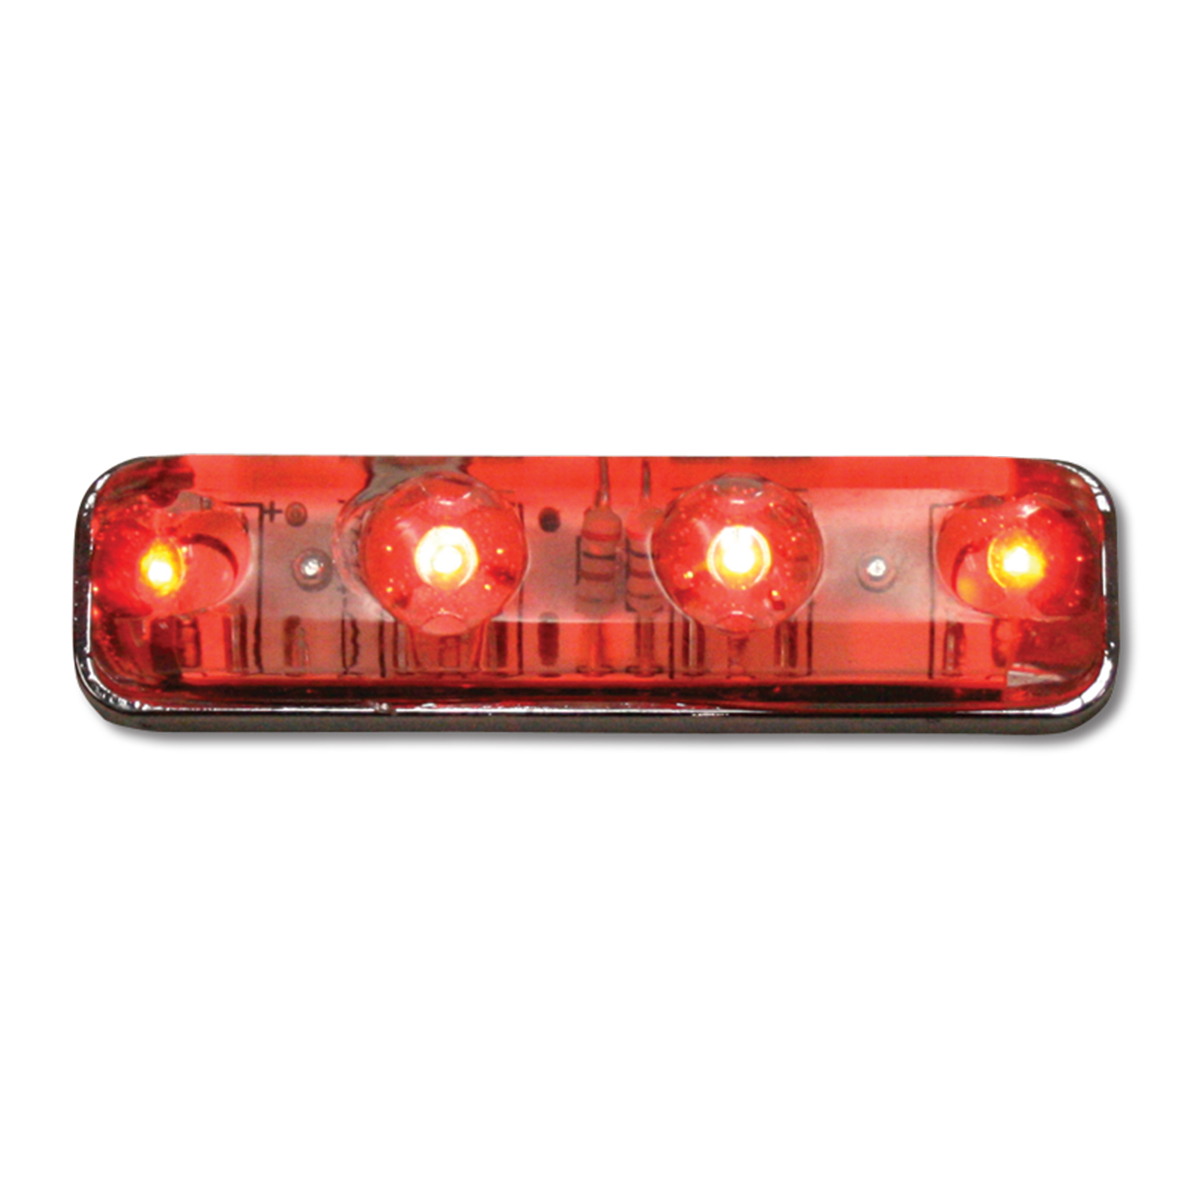 77148 Small Thin Lin Surface Mount LED Light in Red/Clear